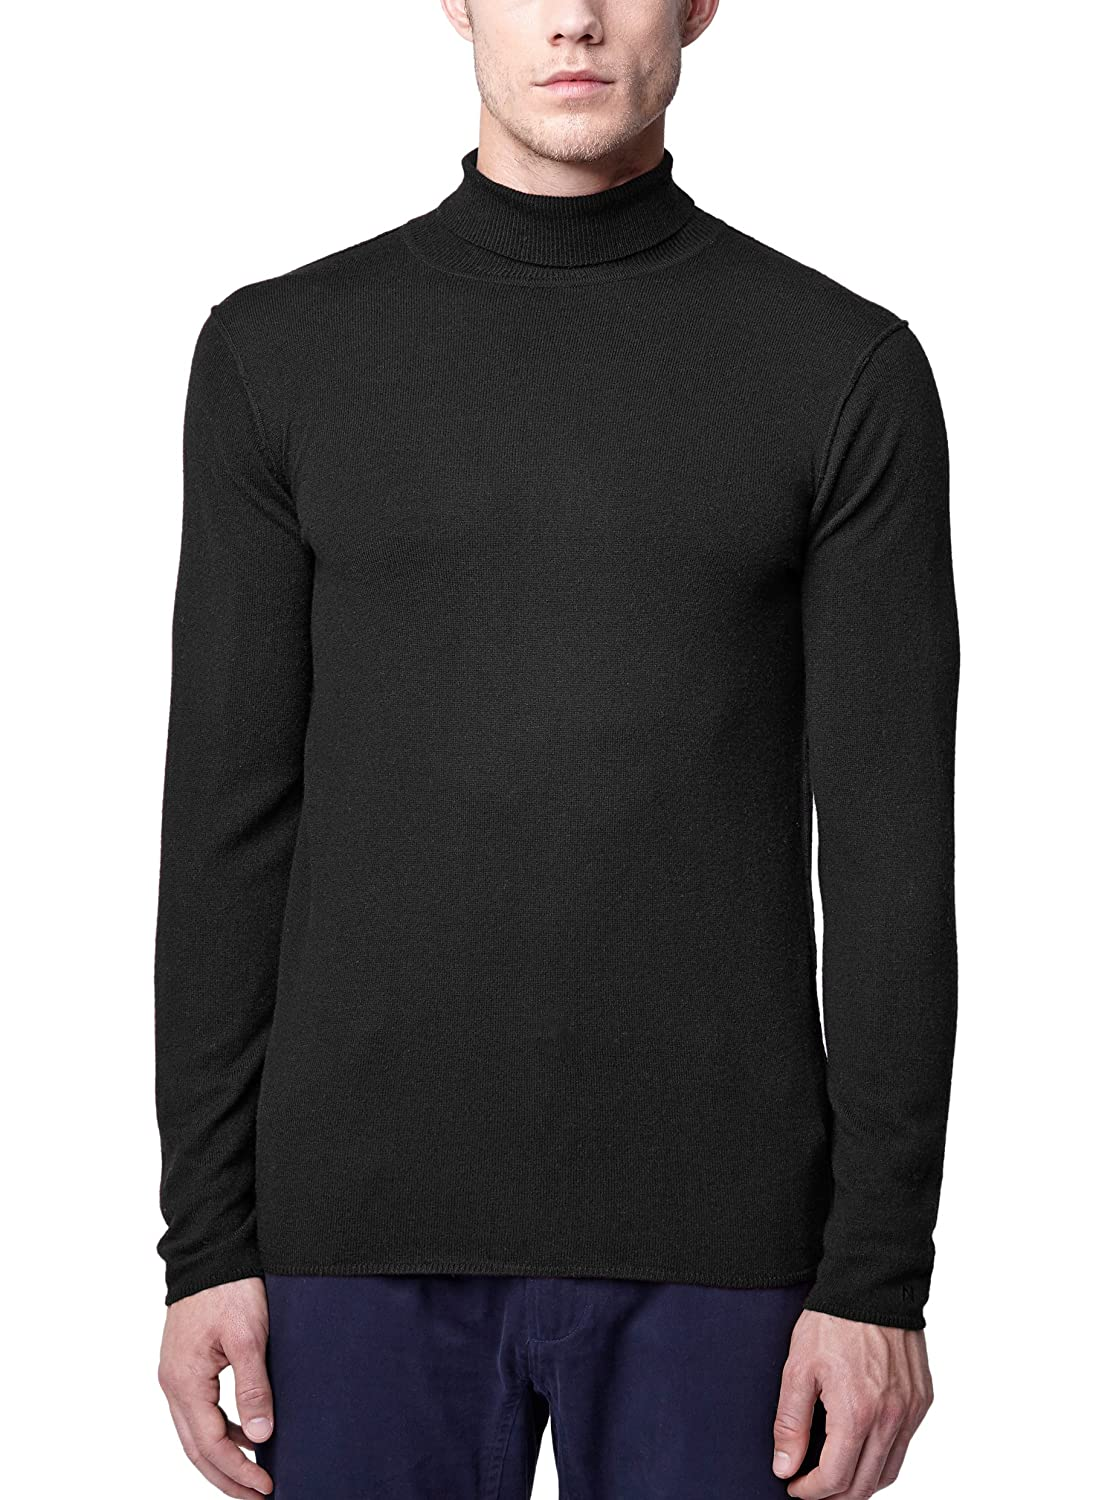 NOWADAYS - Rollneck Sweaters - Men - Black Polo-Neck Sweater for men